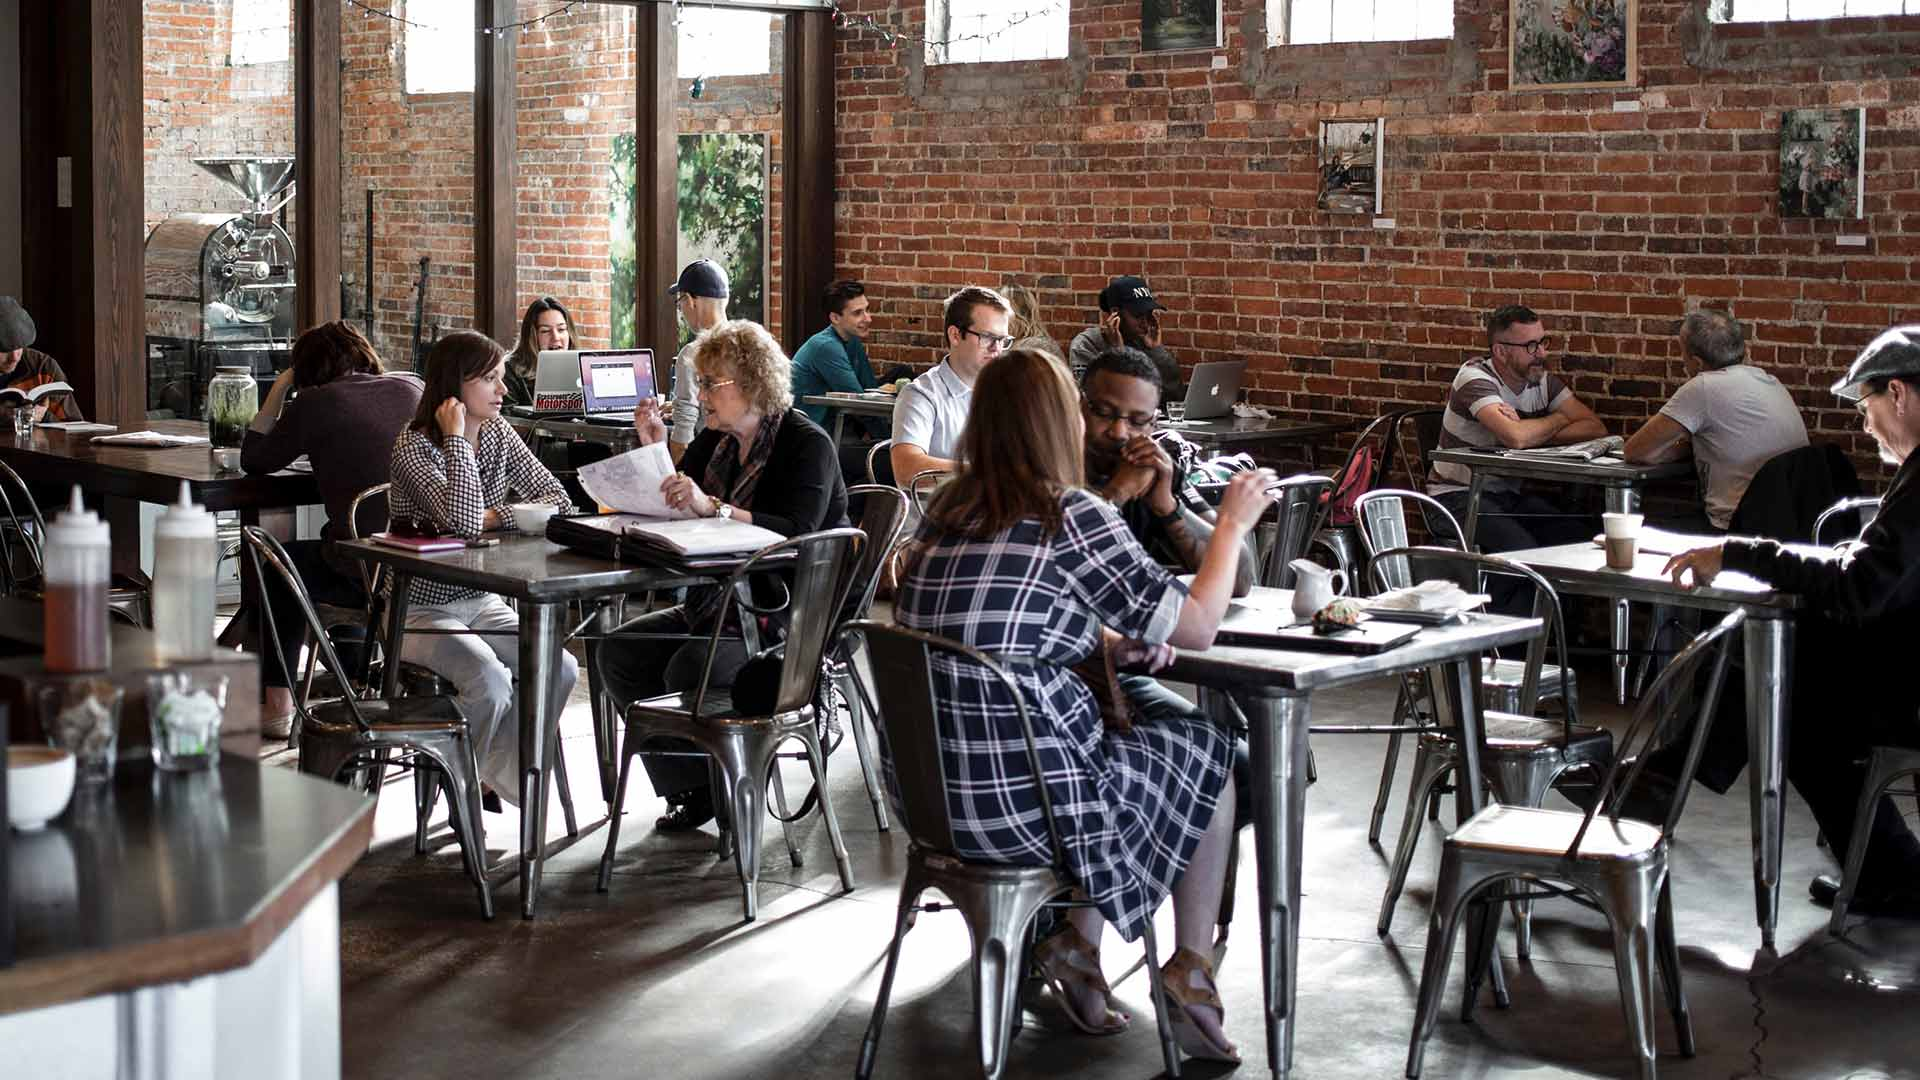 Groups of diverse people sitting at tables in a large warehouse coffee shop working and discussing business with one another.